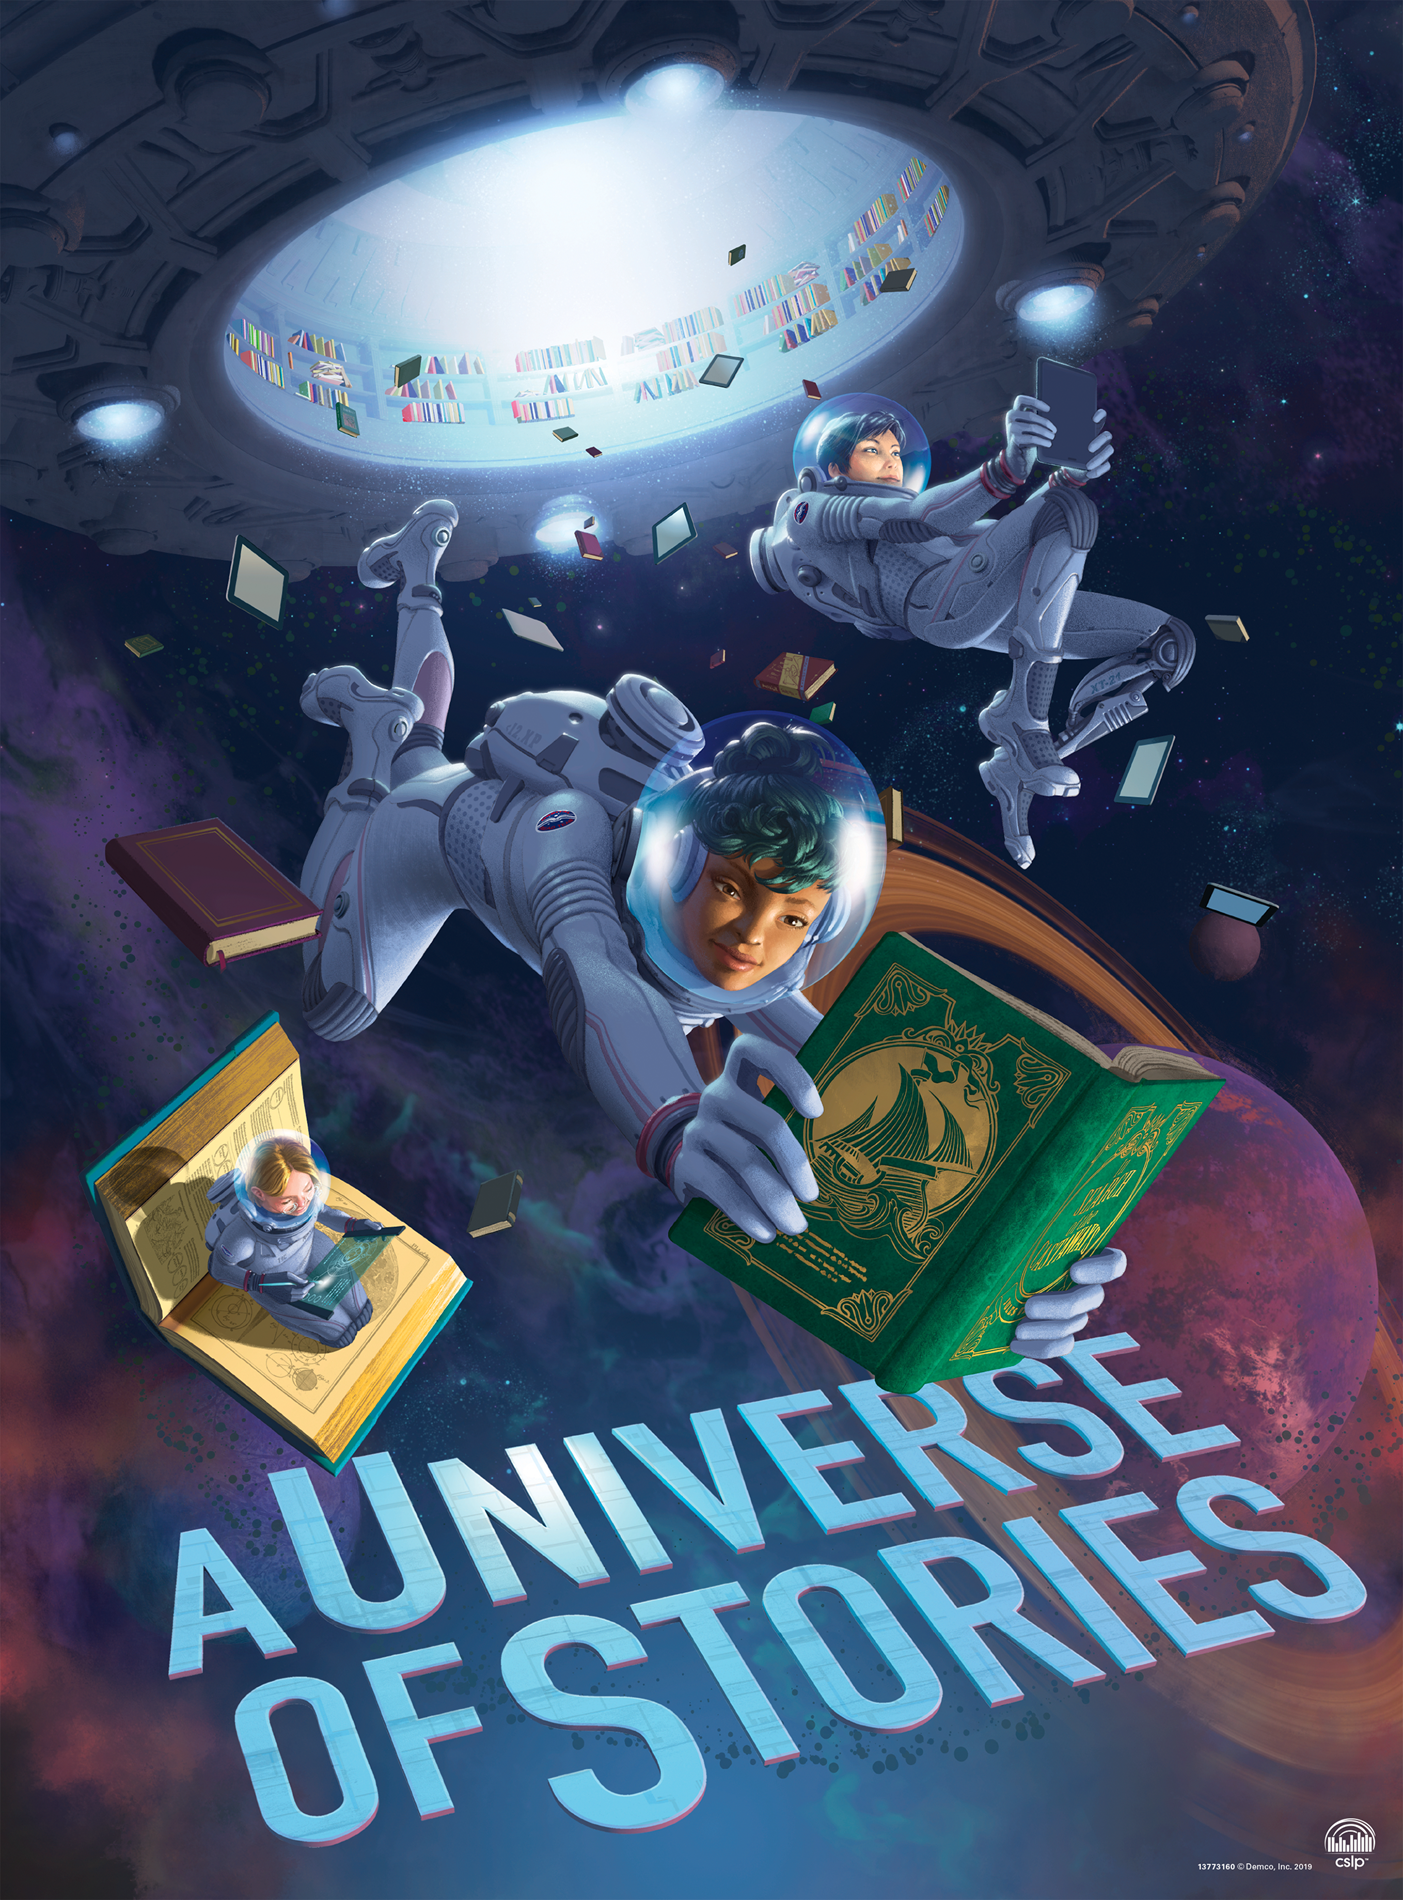 CSLP Universe of Stories Summer Reading Program 2019 Teen Poster by artist Antonio Caparo